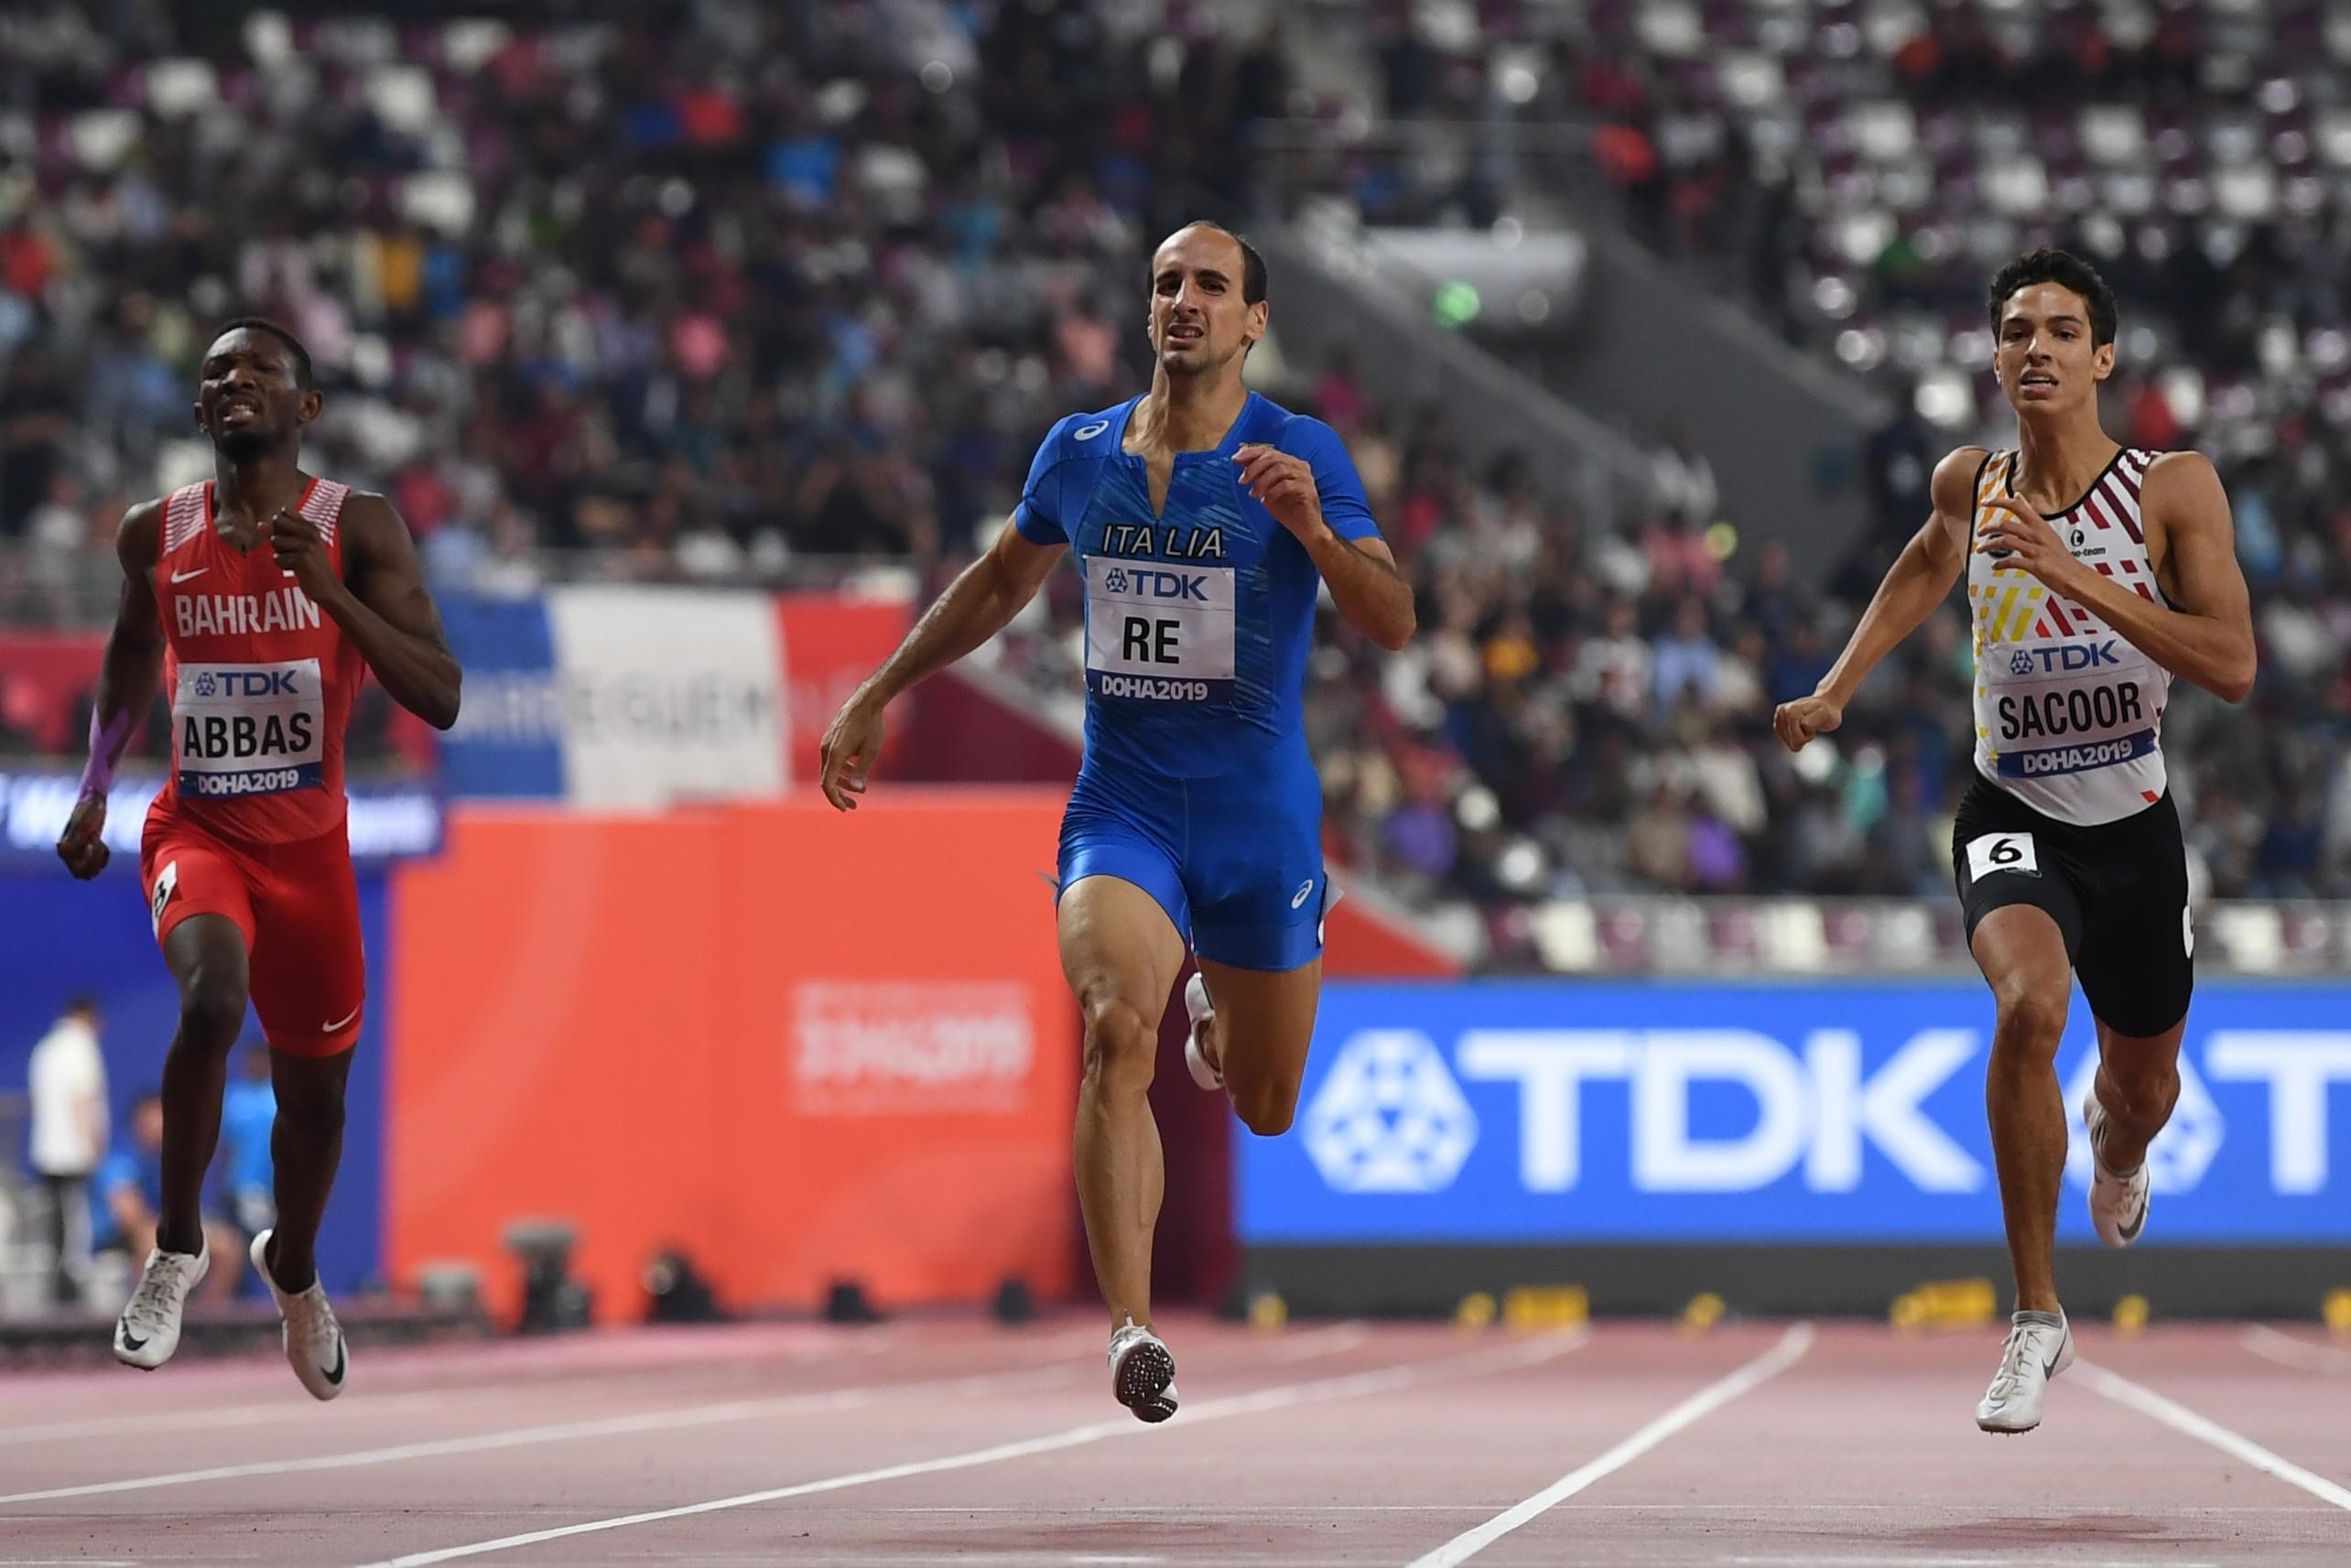 Men's 400m semifinal at the World Athletics Championships Doha 2019 (AFP / Getty Images)